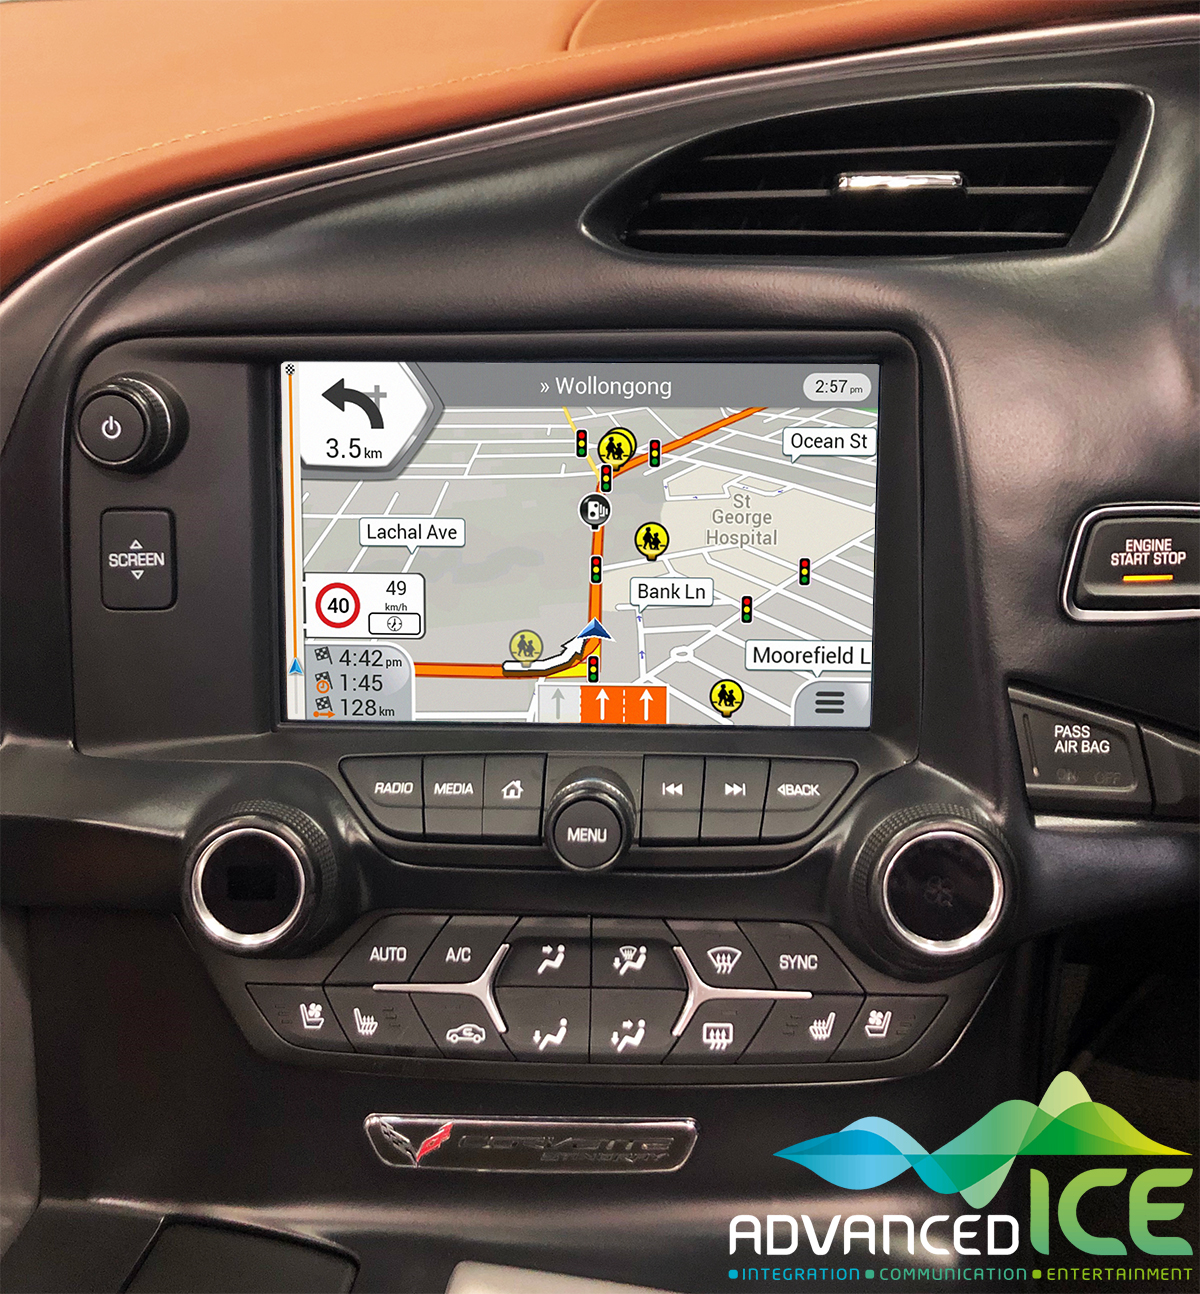 GM Integrated Navigation System - Advanced ICE